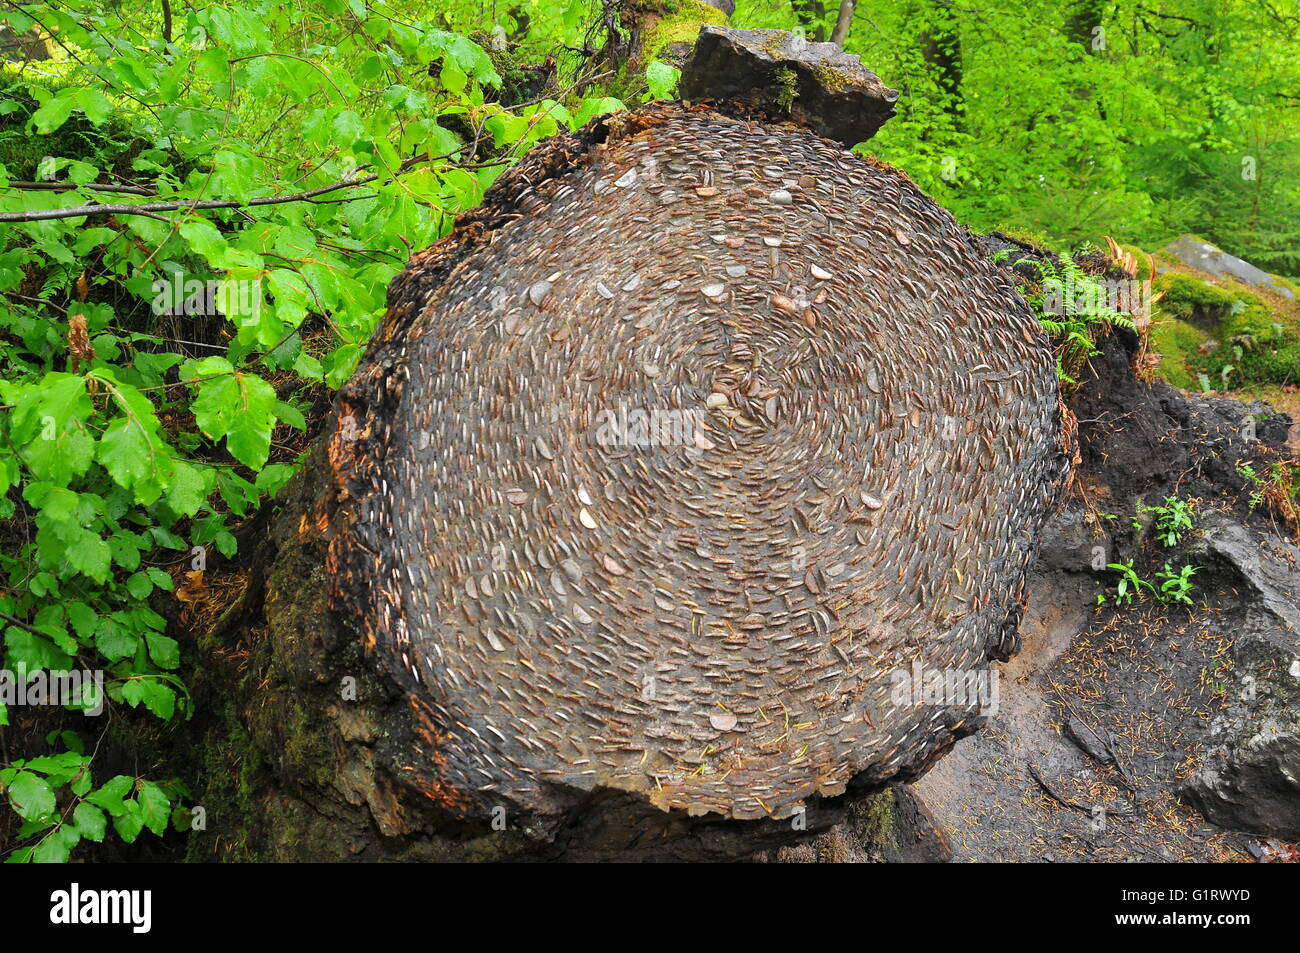 Wishing Tree: coins hammered into tree trunk for luck. The Hermitage, Dunkeld, Perthshire, Scotland - Stock Image